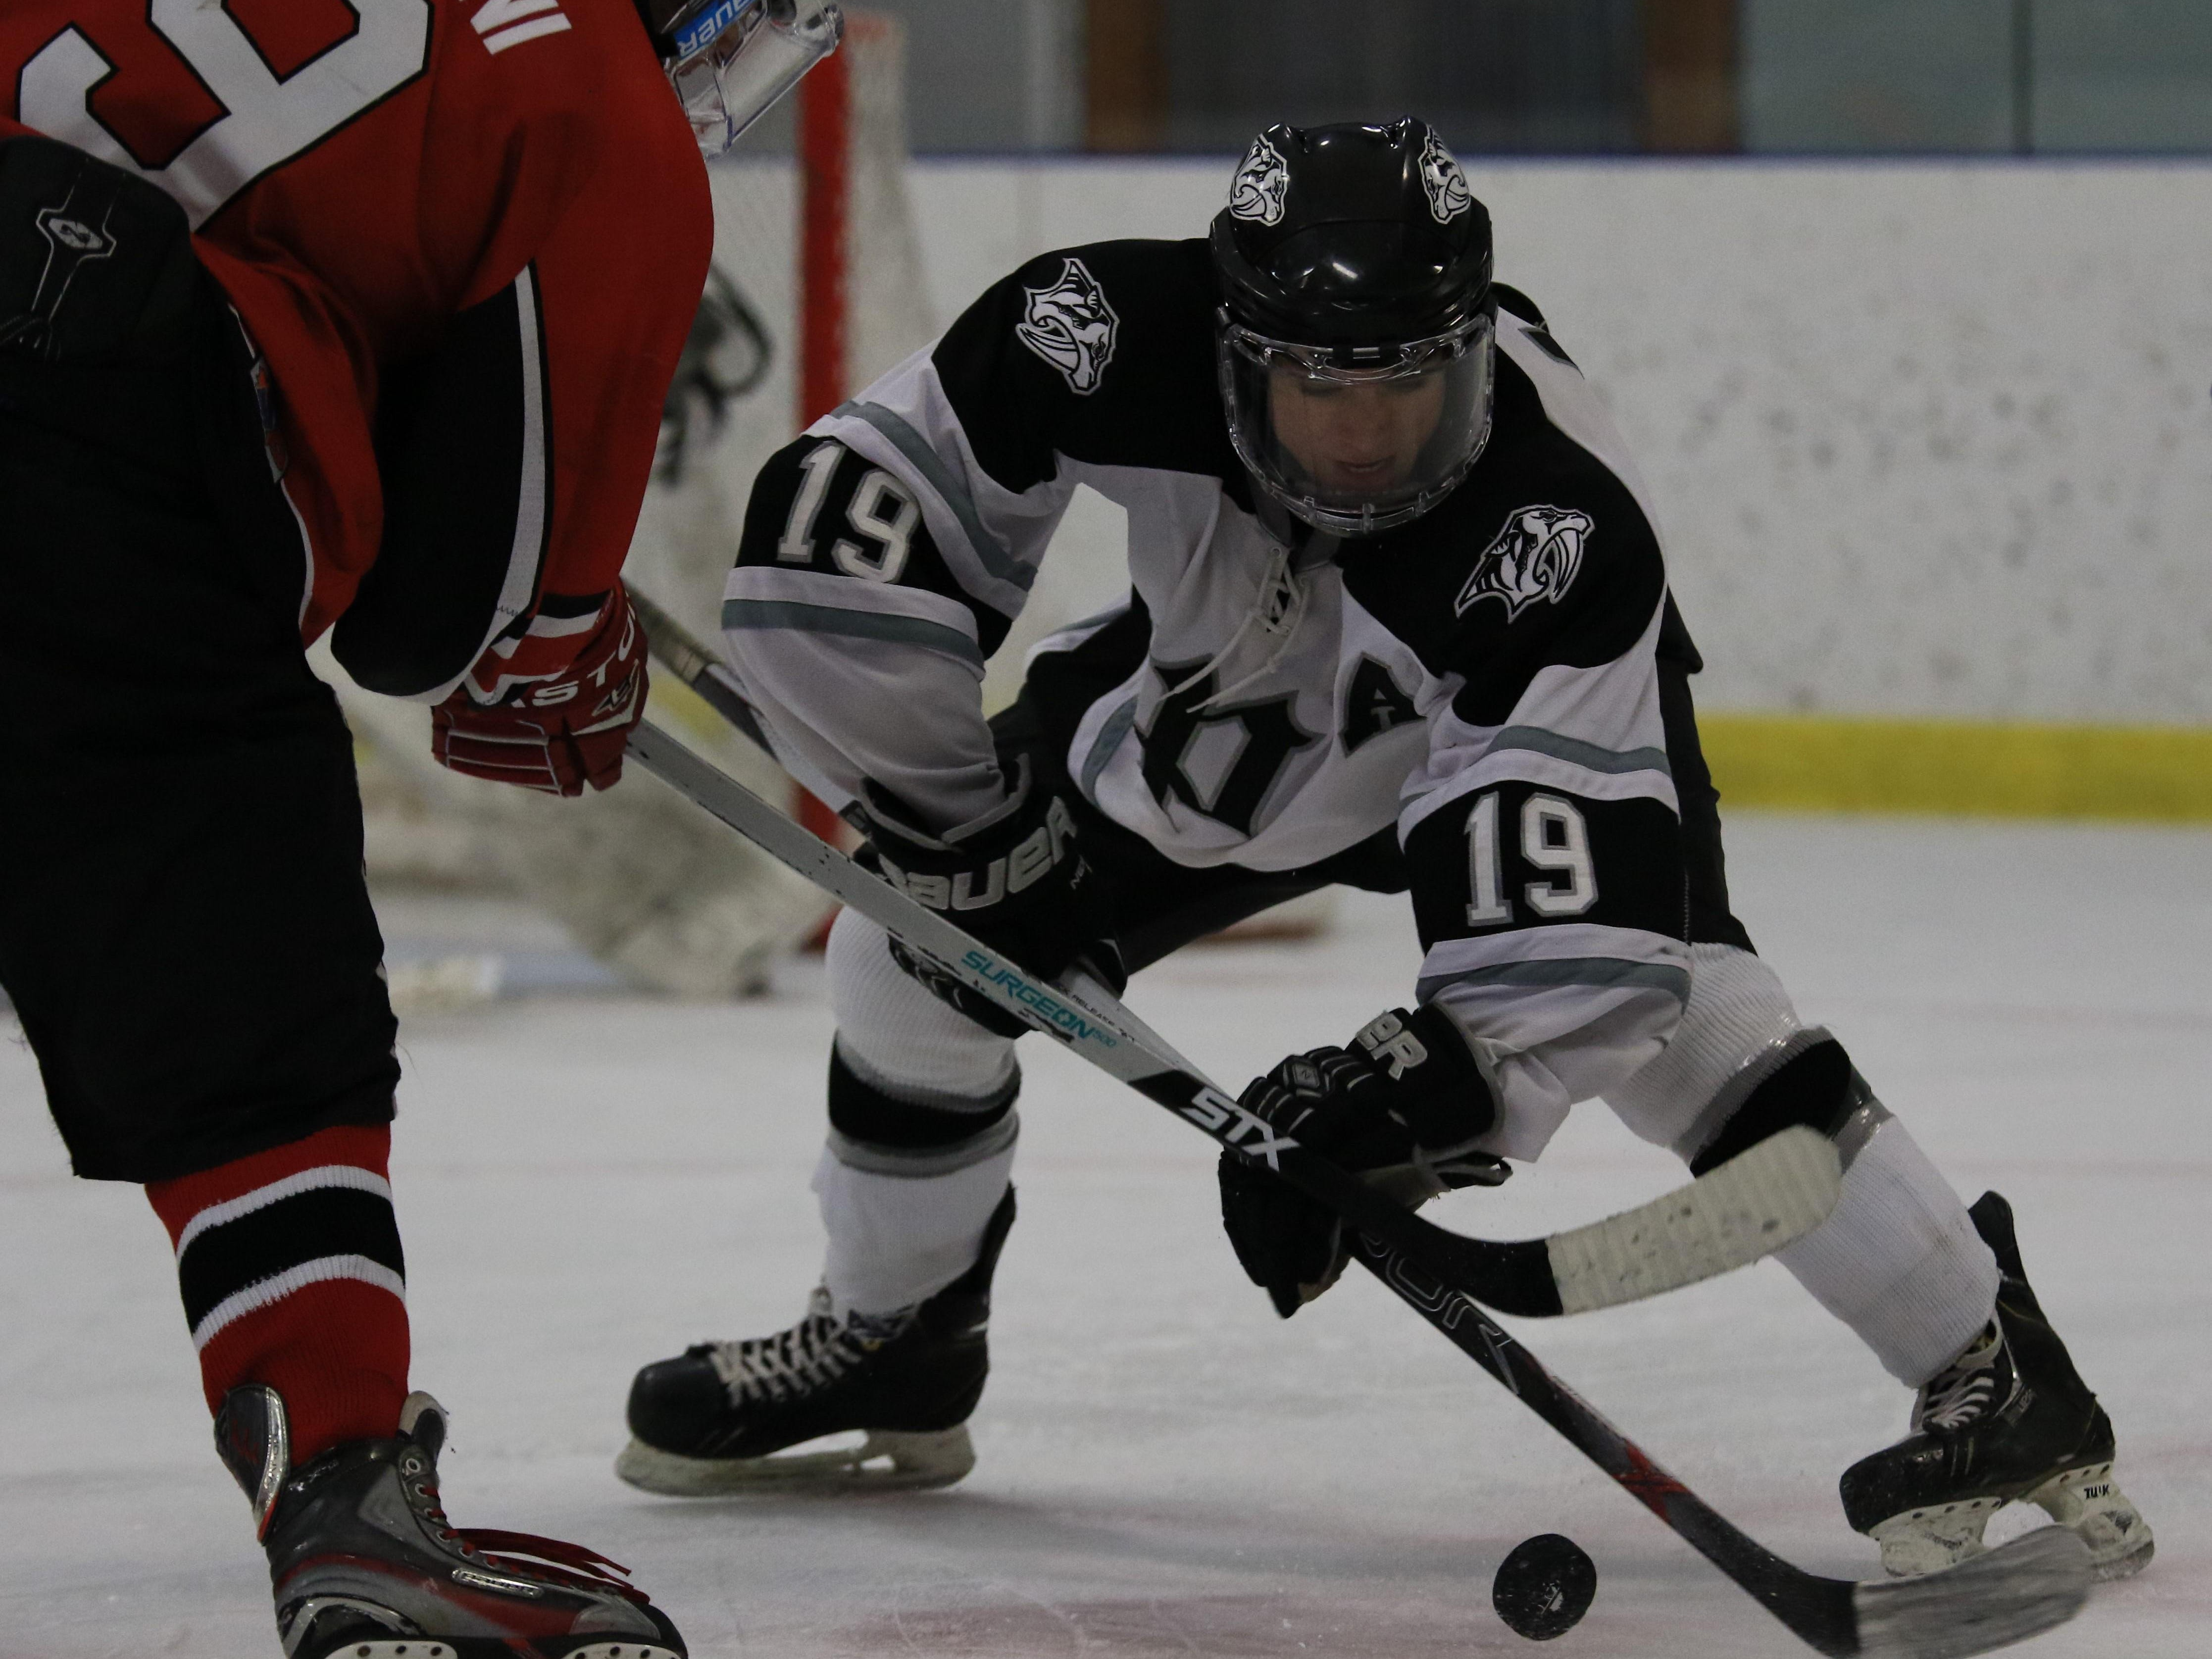 Squaring off during a faceoff are Canton's Brian Oldani and Plymouth's Alex Bump.